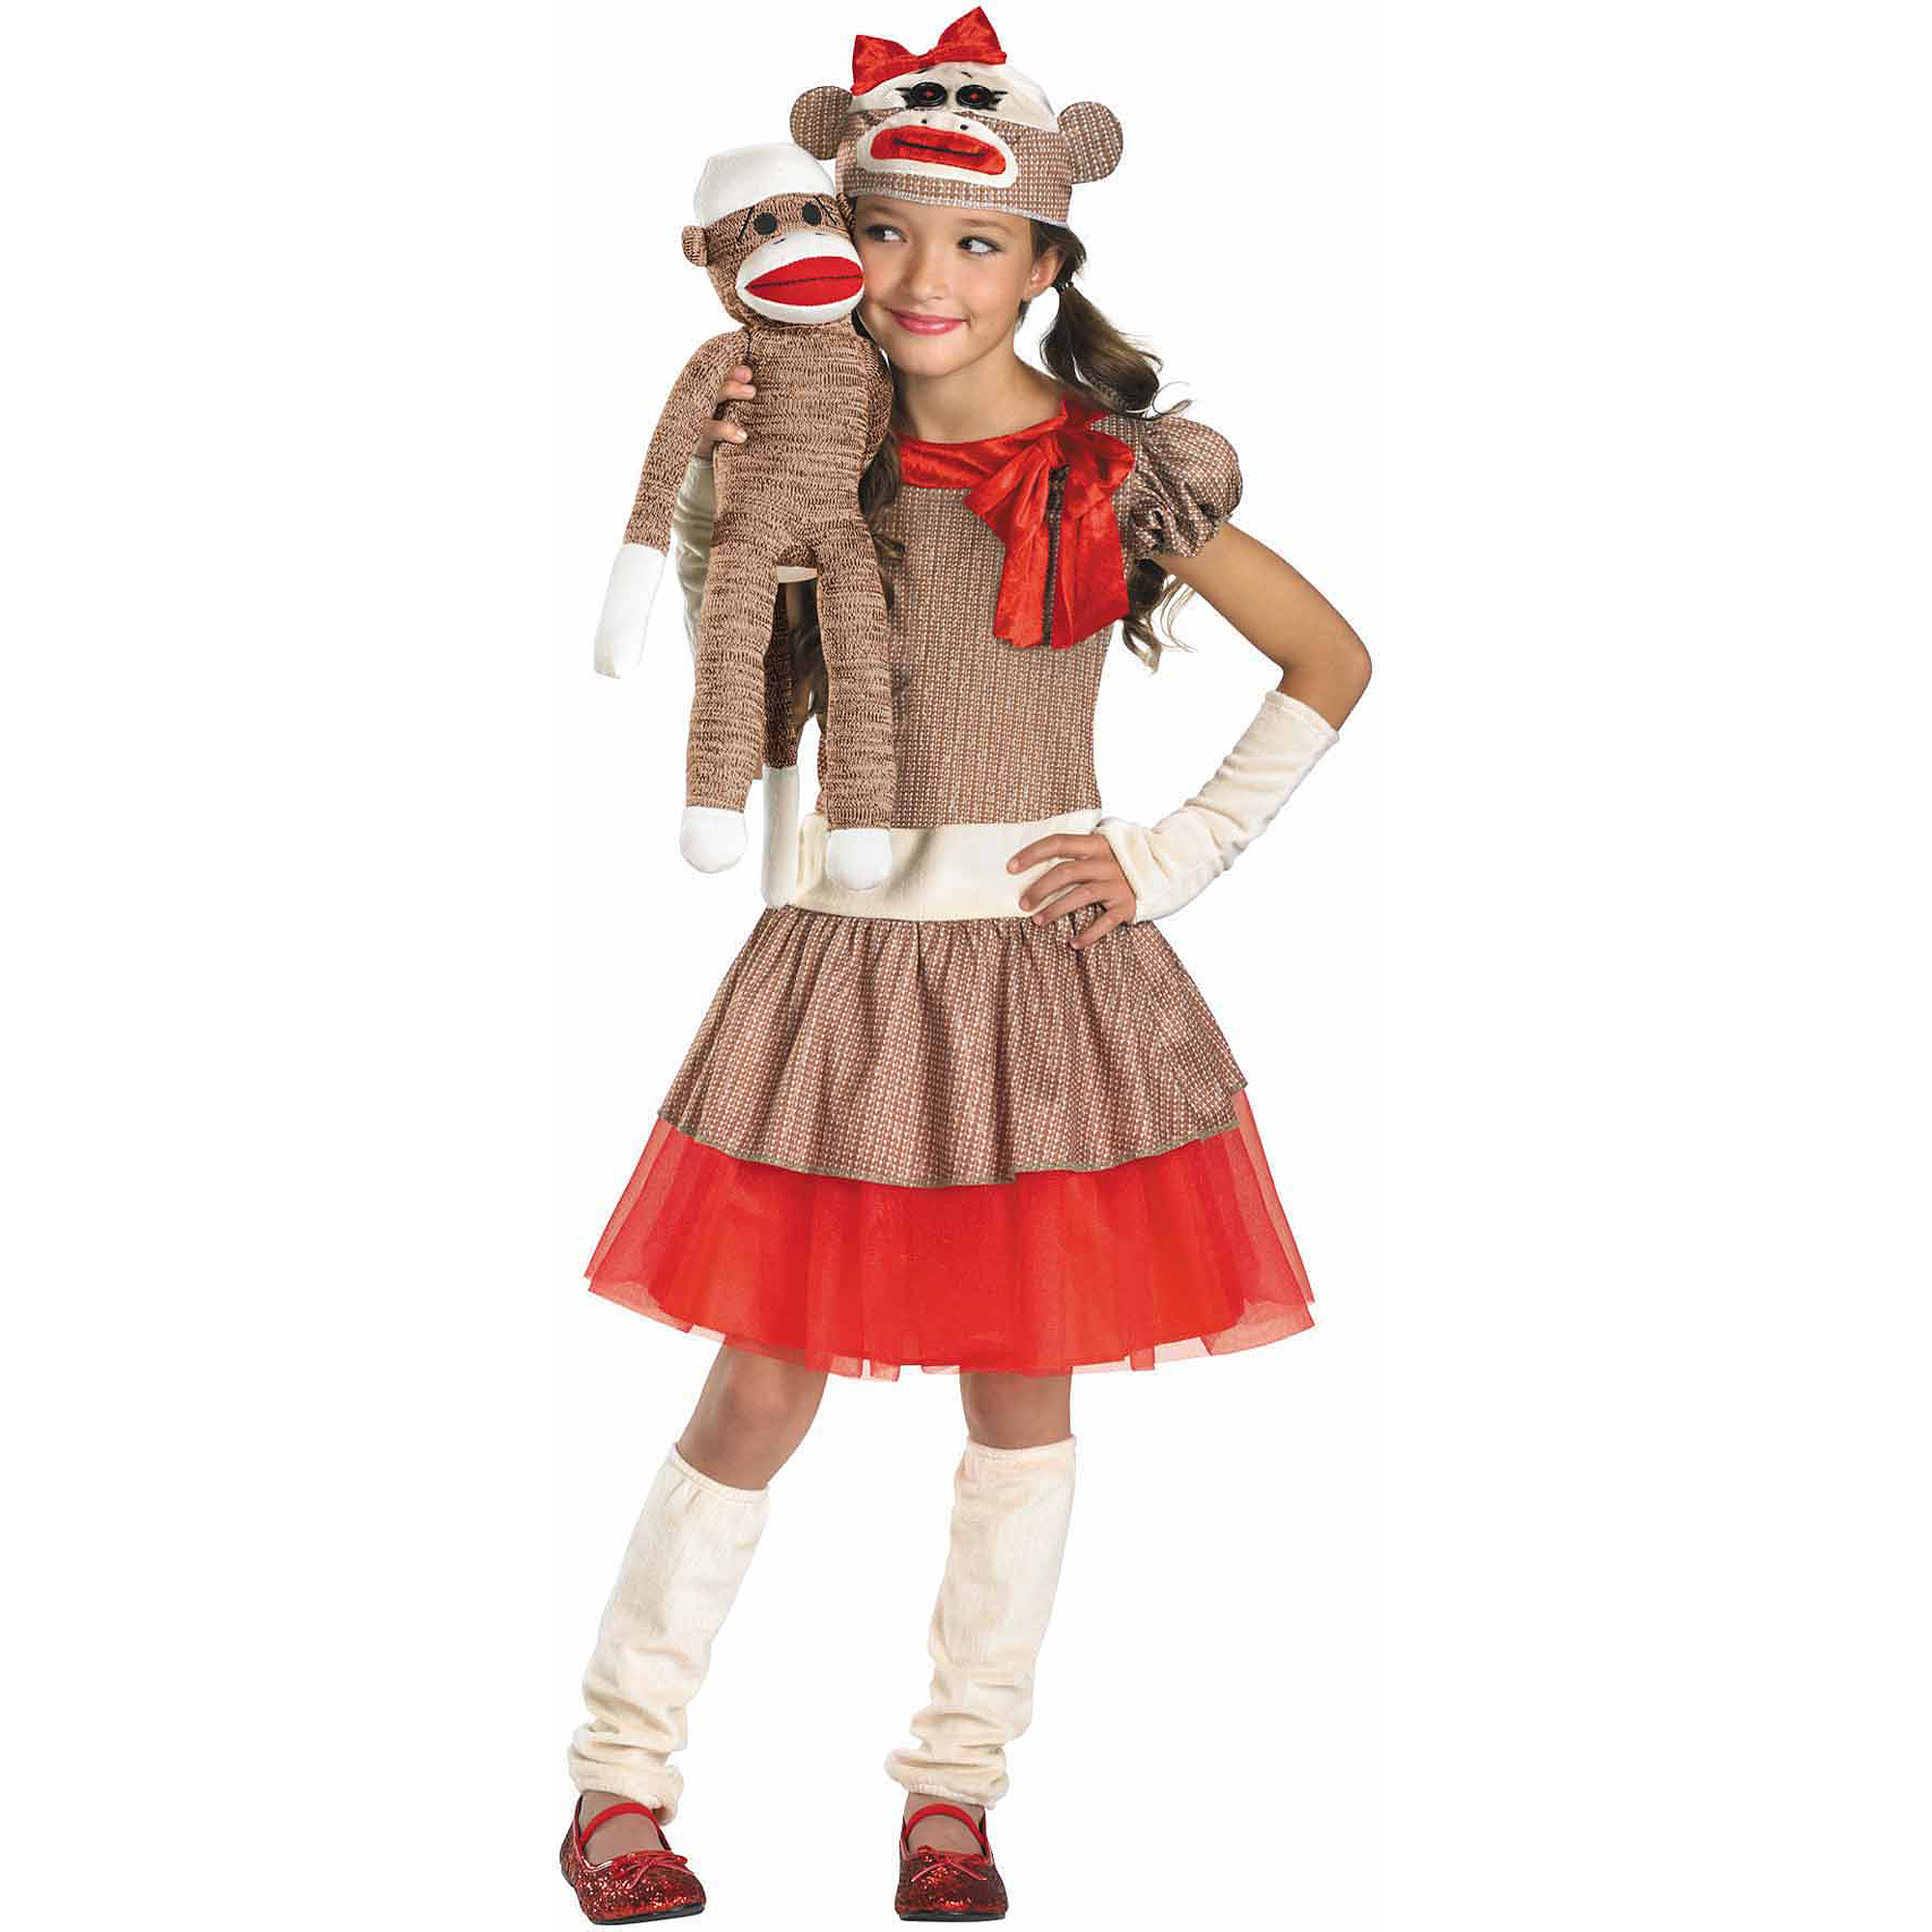 Sock Monkey Girl Child Halloween Costume  sc 1 st  Walmart & Sock Monkey Girl Child Halloween Costume - Walmart.com